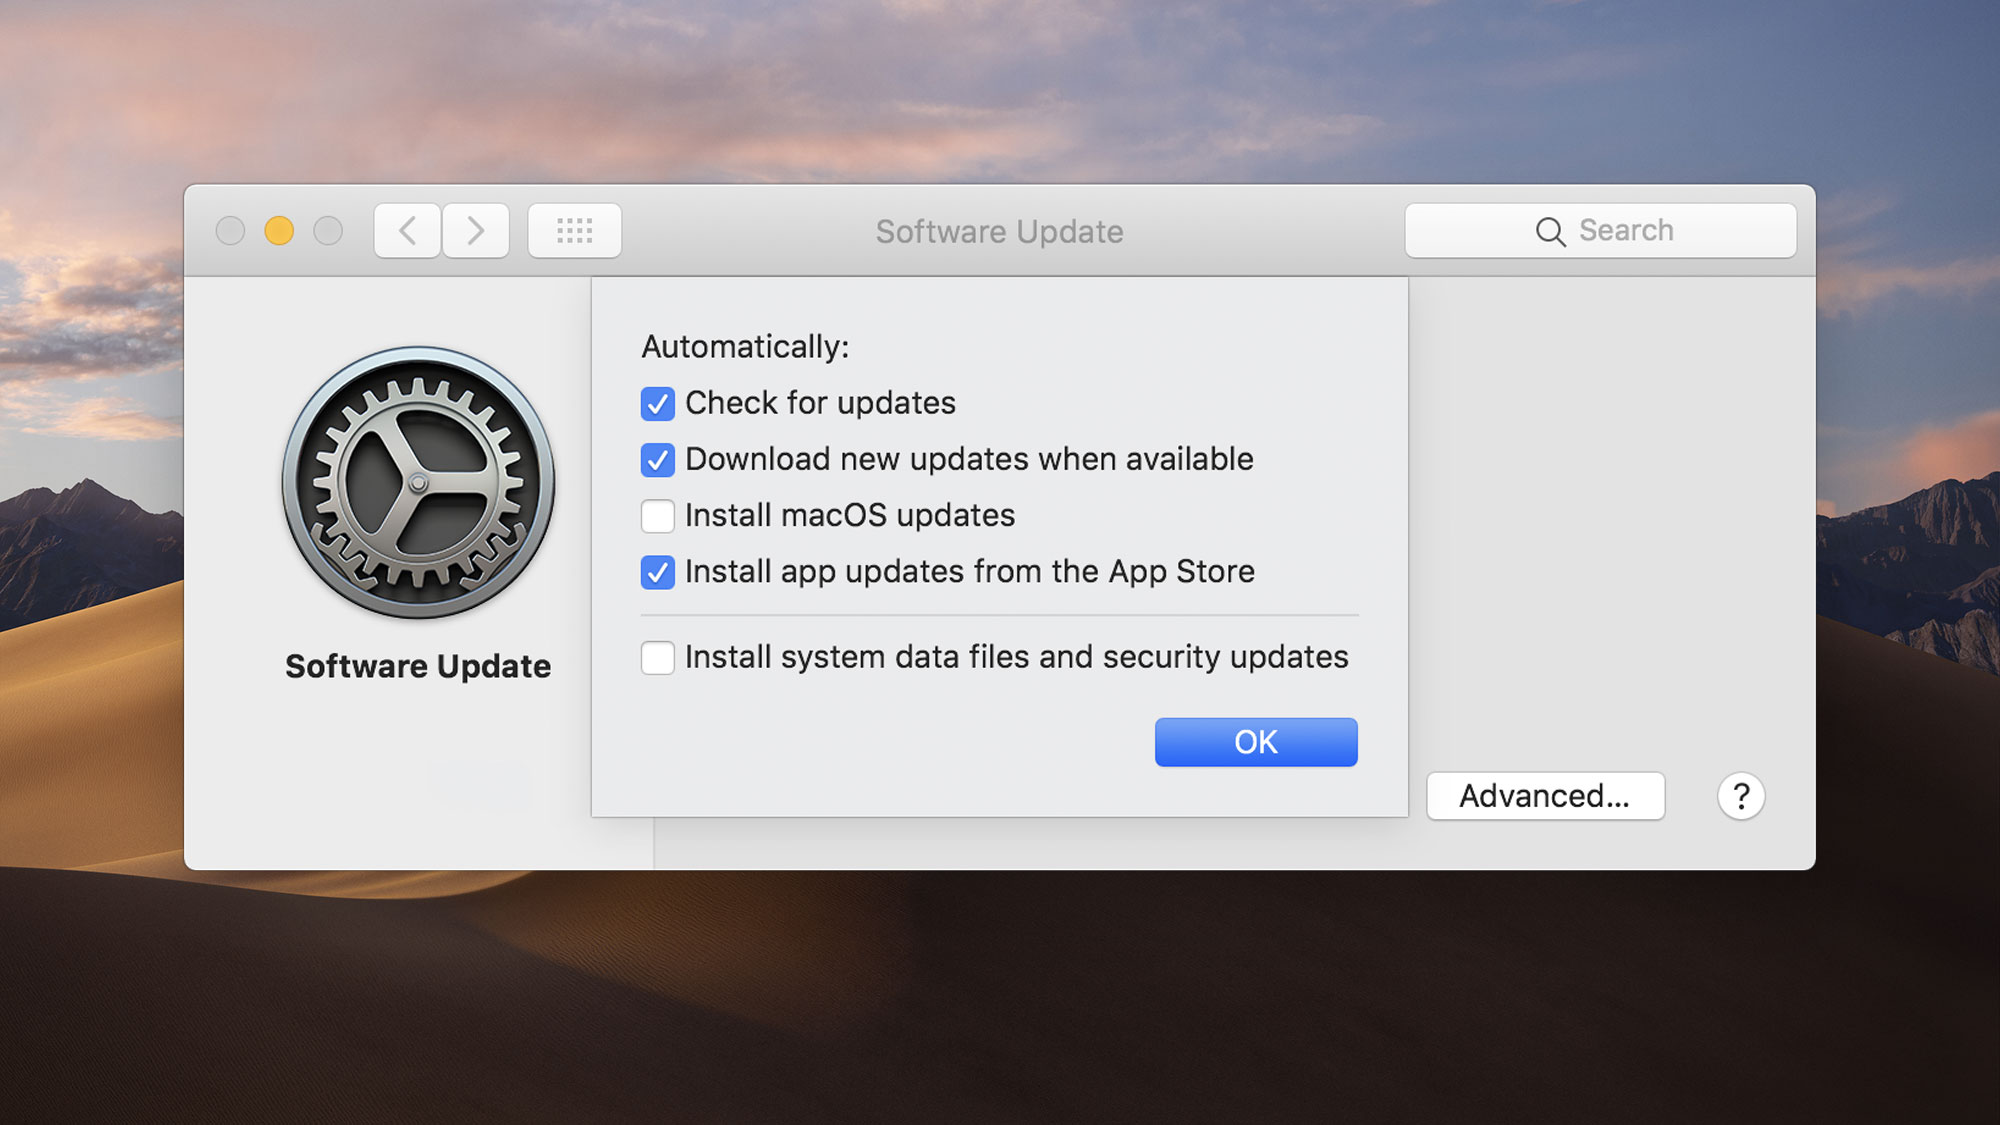 mojave software update advanced